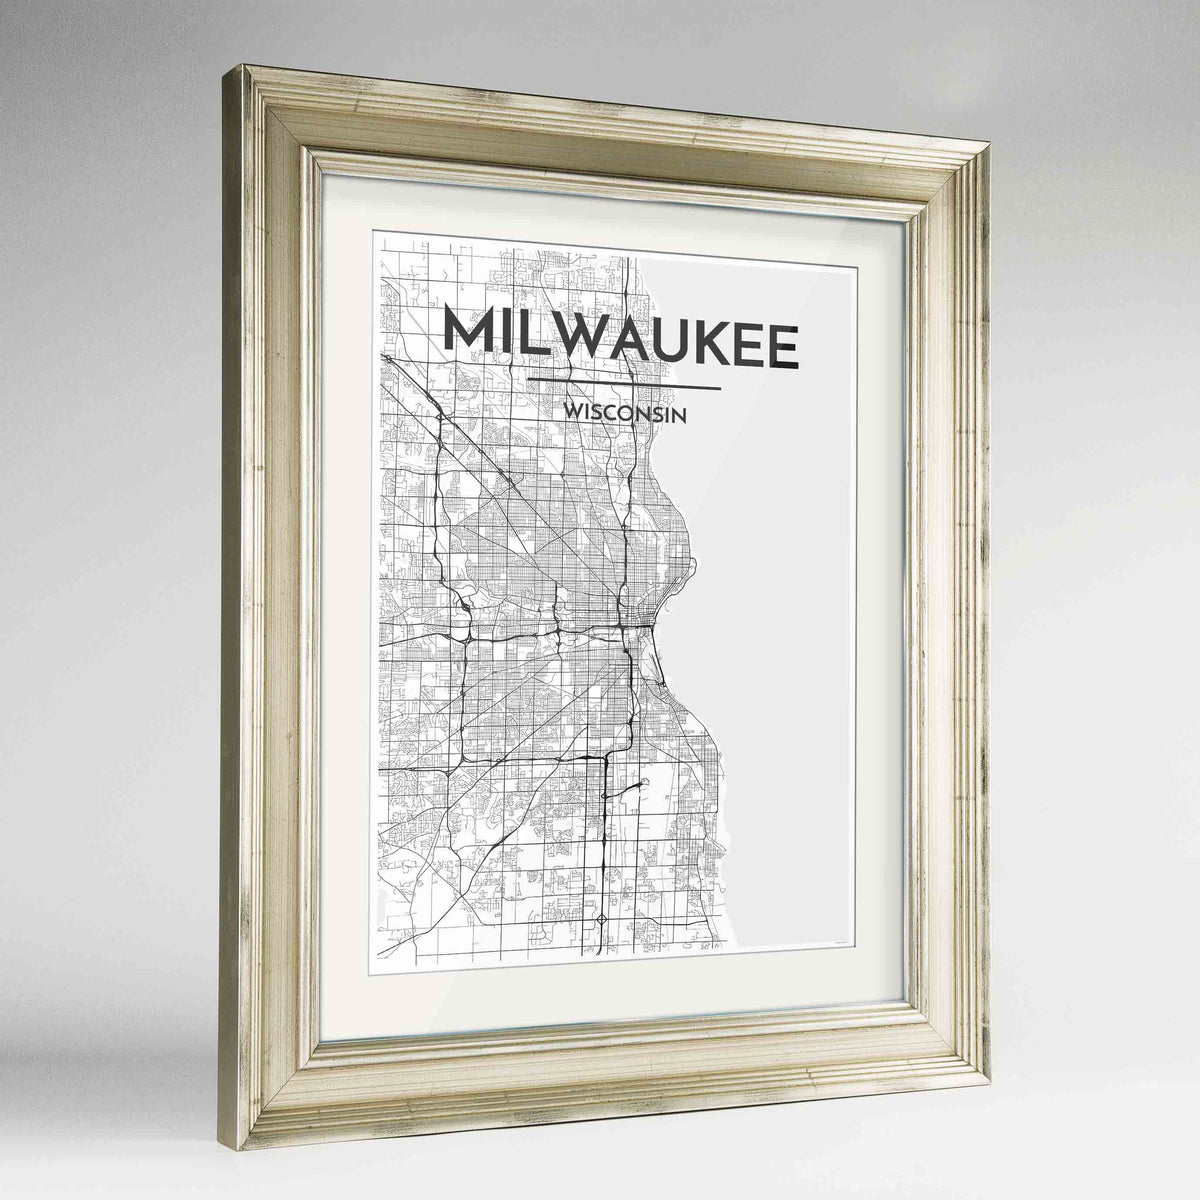 "Framed Milwaukee City Map 24x36"" Champagne frame Point Two Design Group"